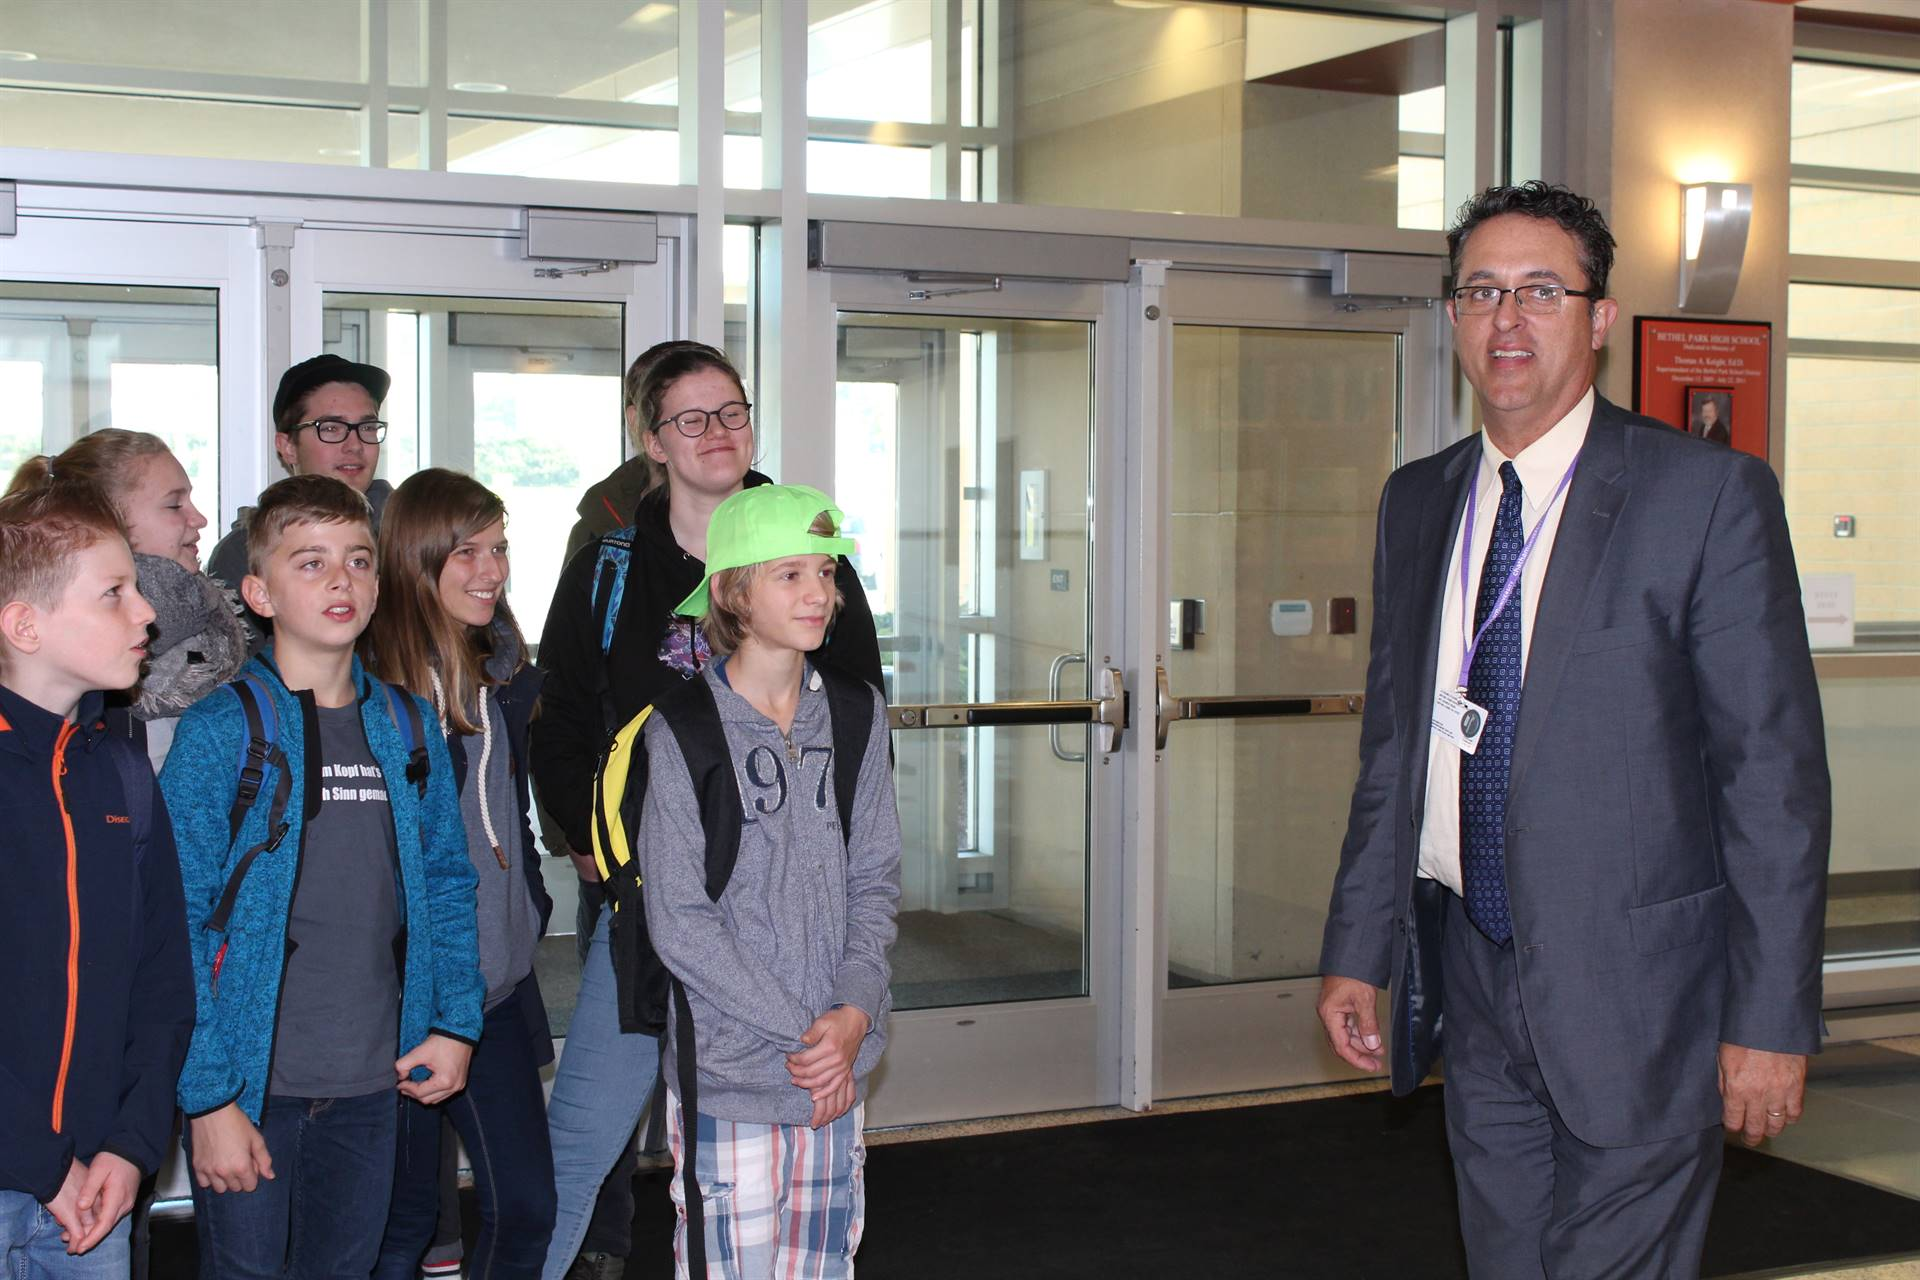 BPHS Principal Dr. Zeb Jansante welcomes the visiting German students